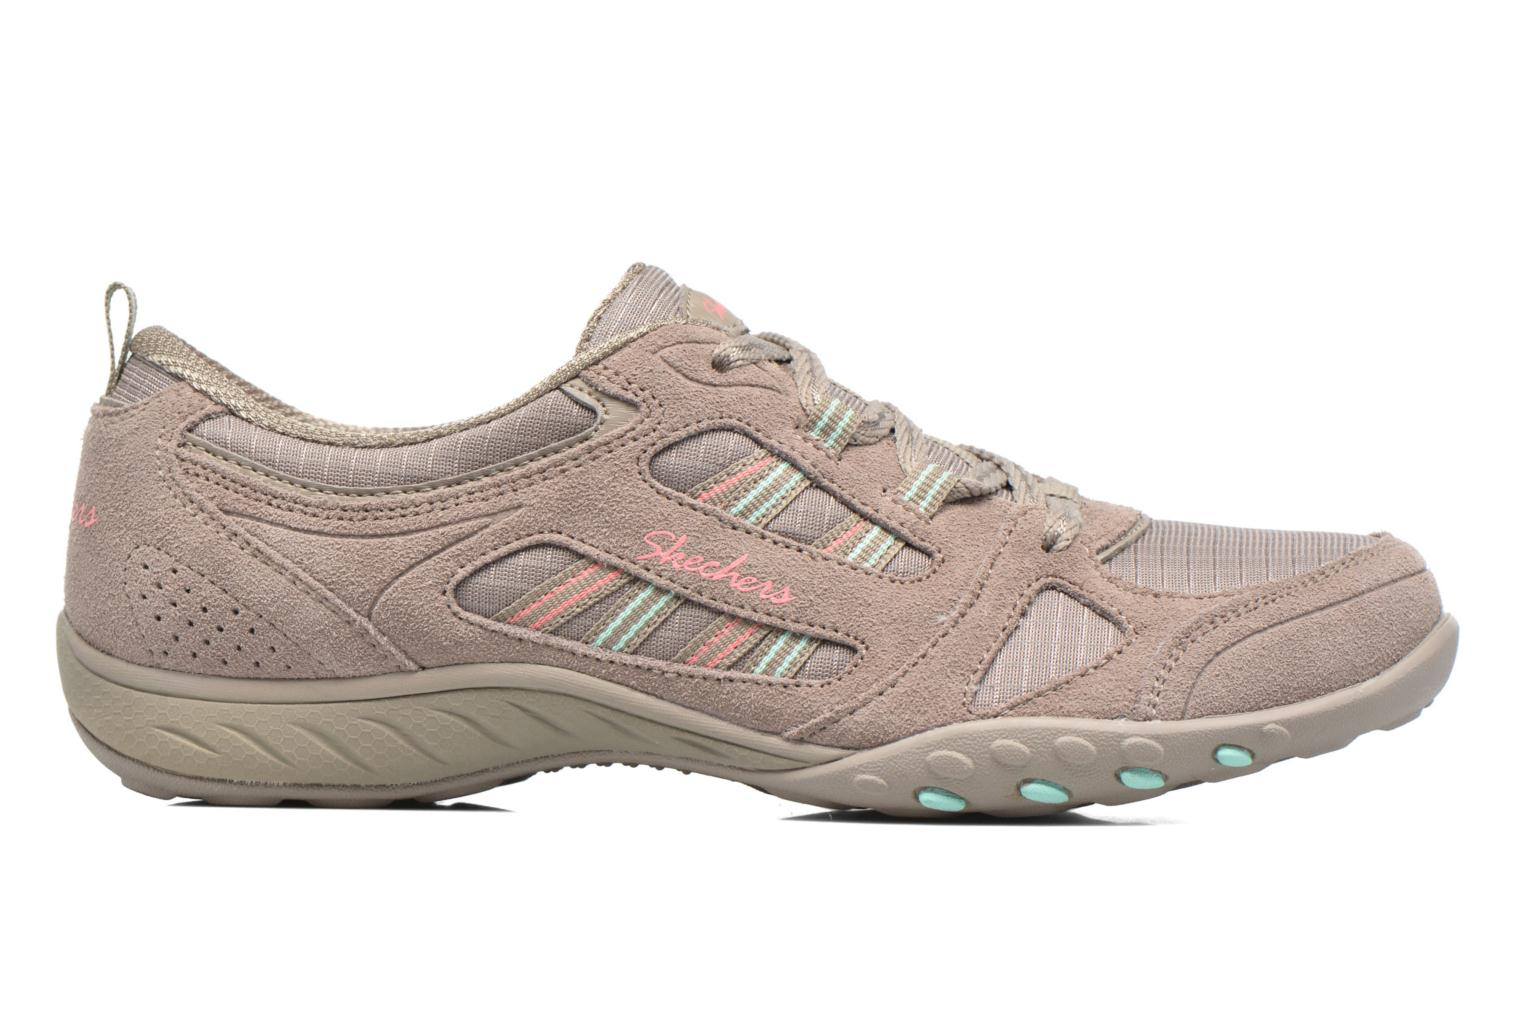 Deportivas Skechers Breathe-Easy - Good Gris vistra trasera